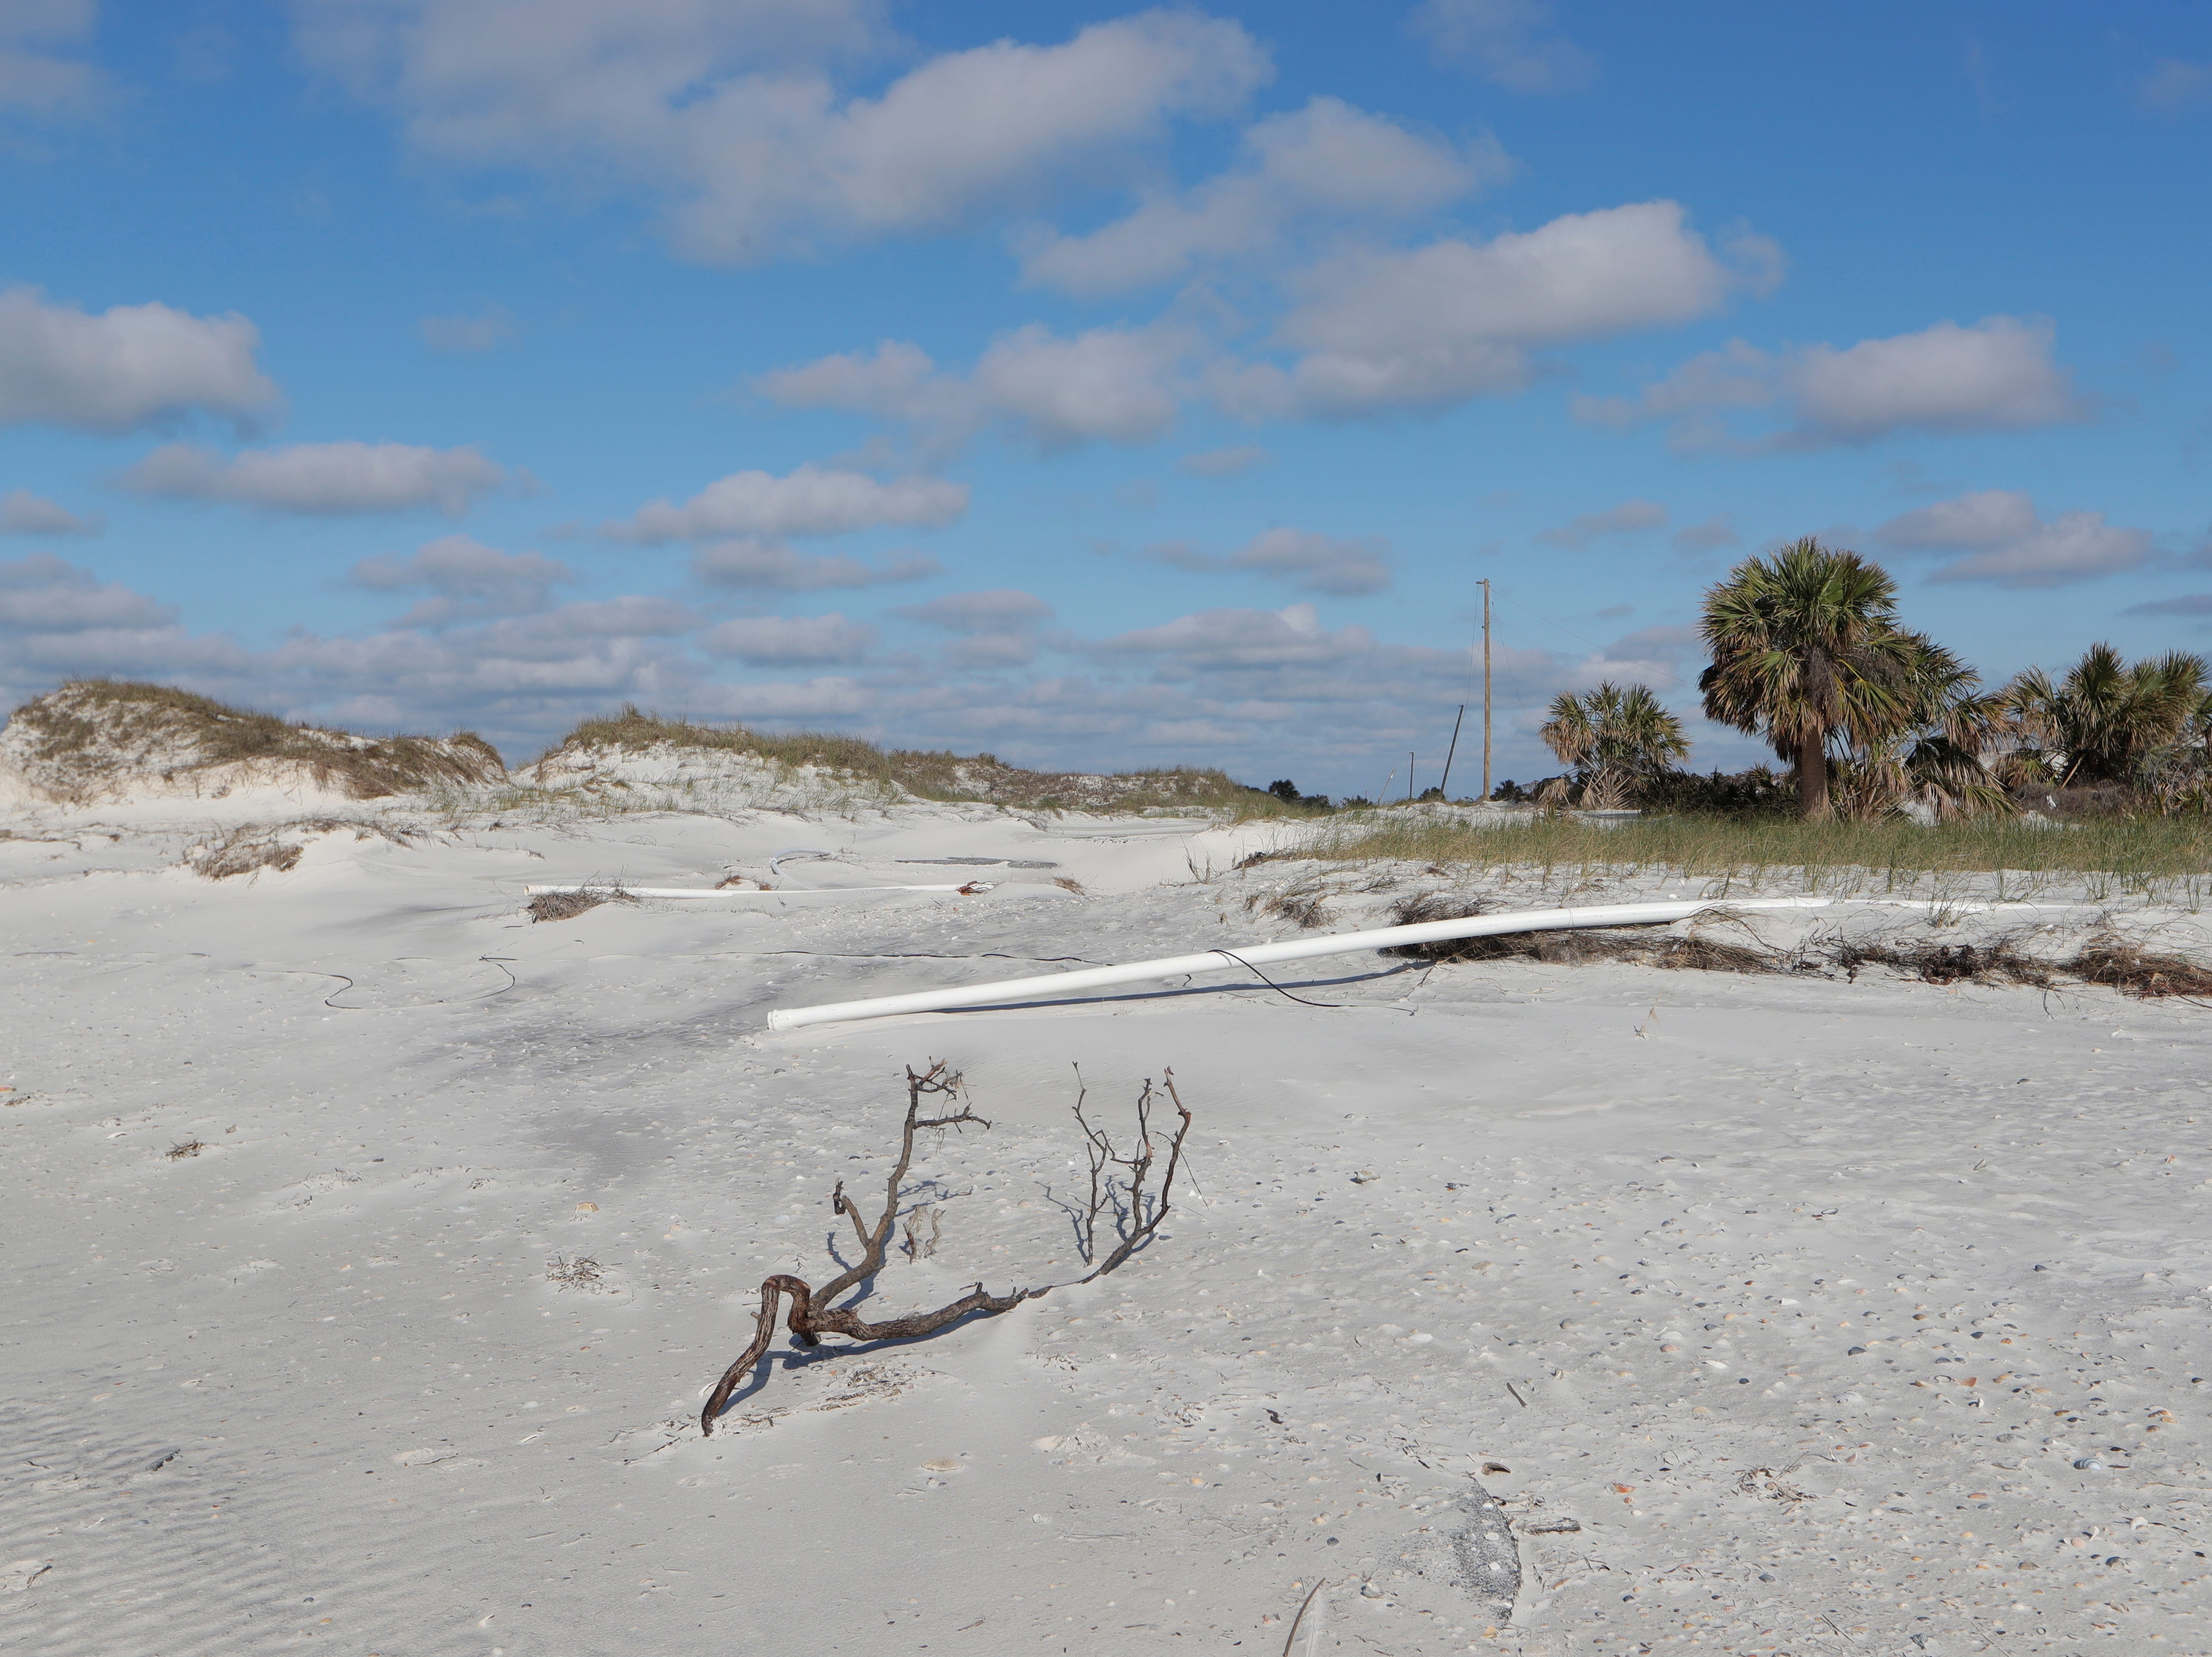 Pipes for the water line on St. Joseph Peninsula State Park, Monday, Jan. 14, 2019, are no longer connected to on another and the road has been completely washed away due to Hurricane Michael.